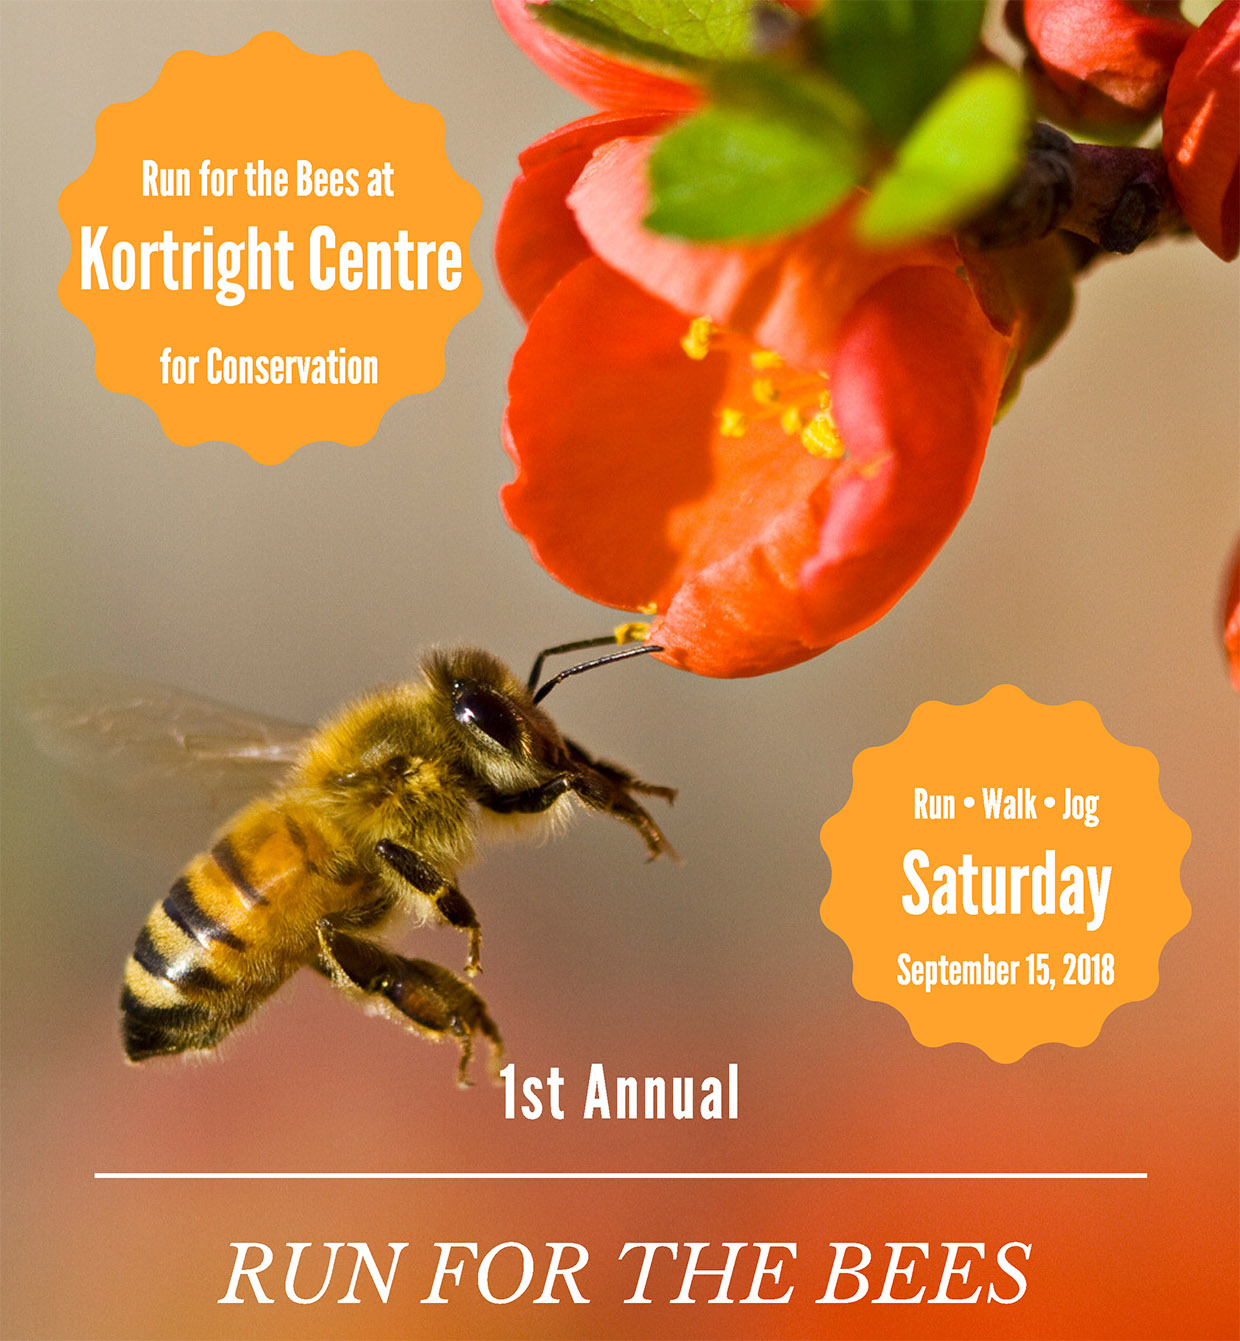 Run for the Bees poster